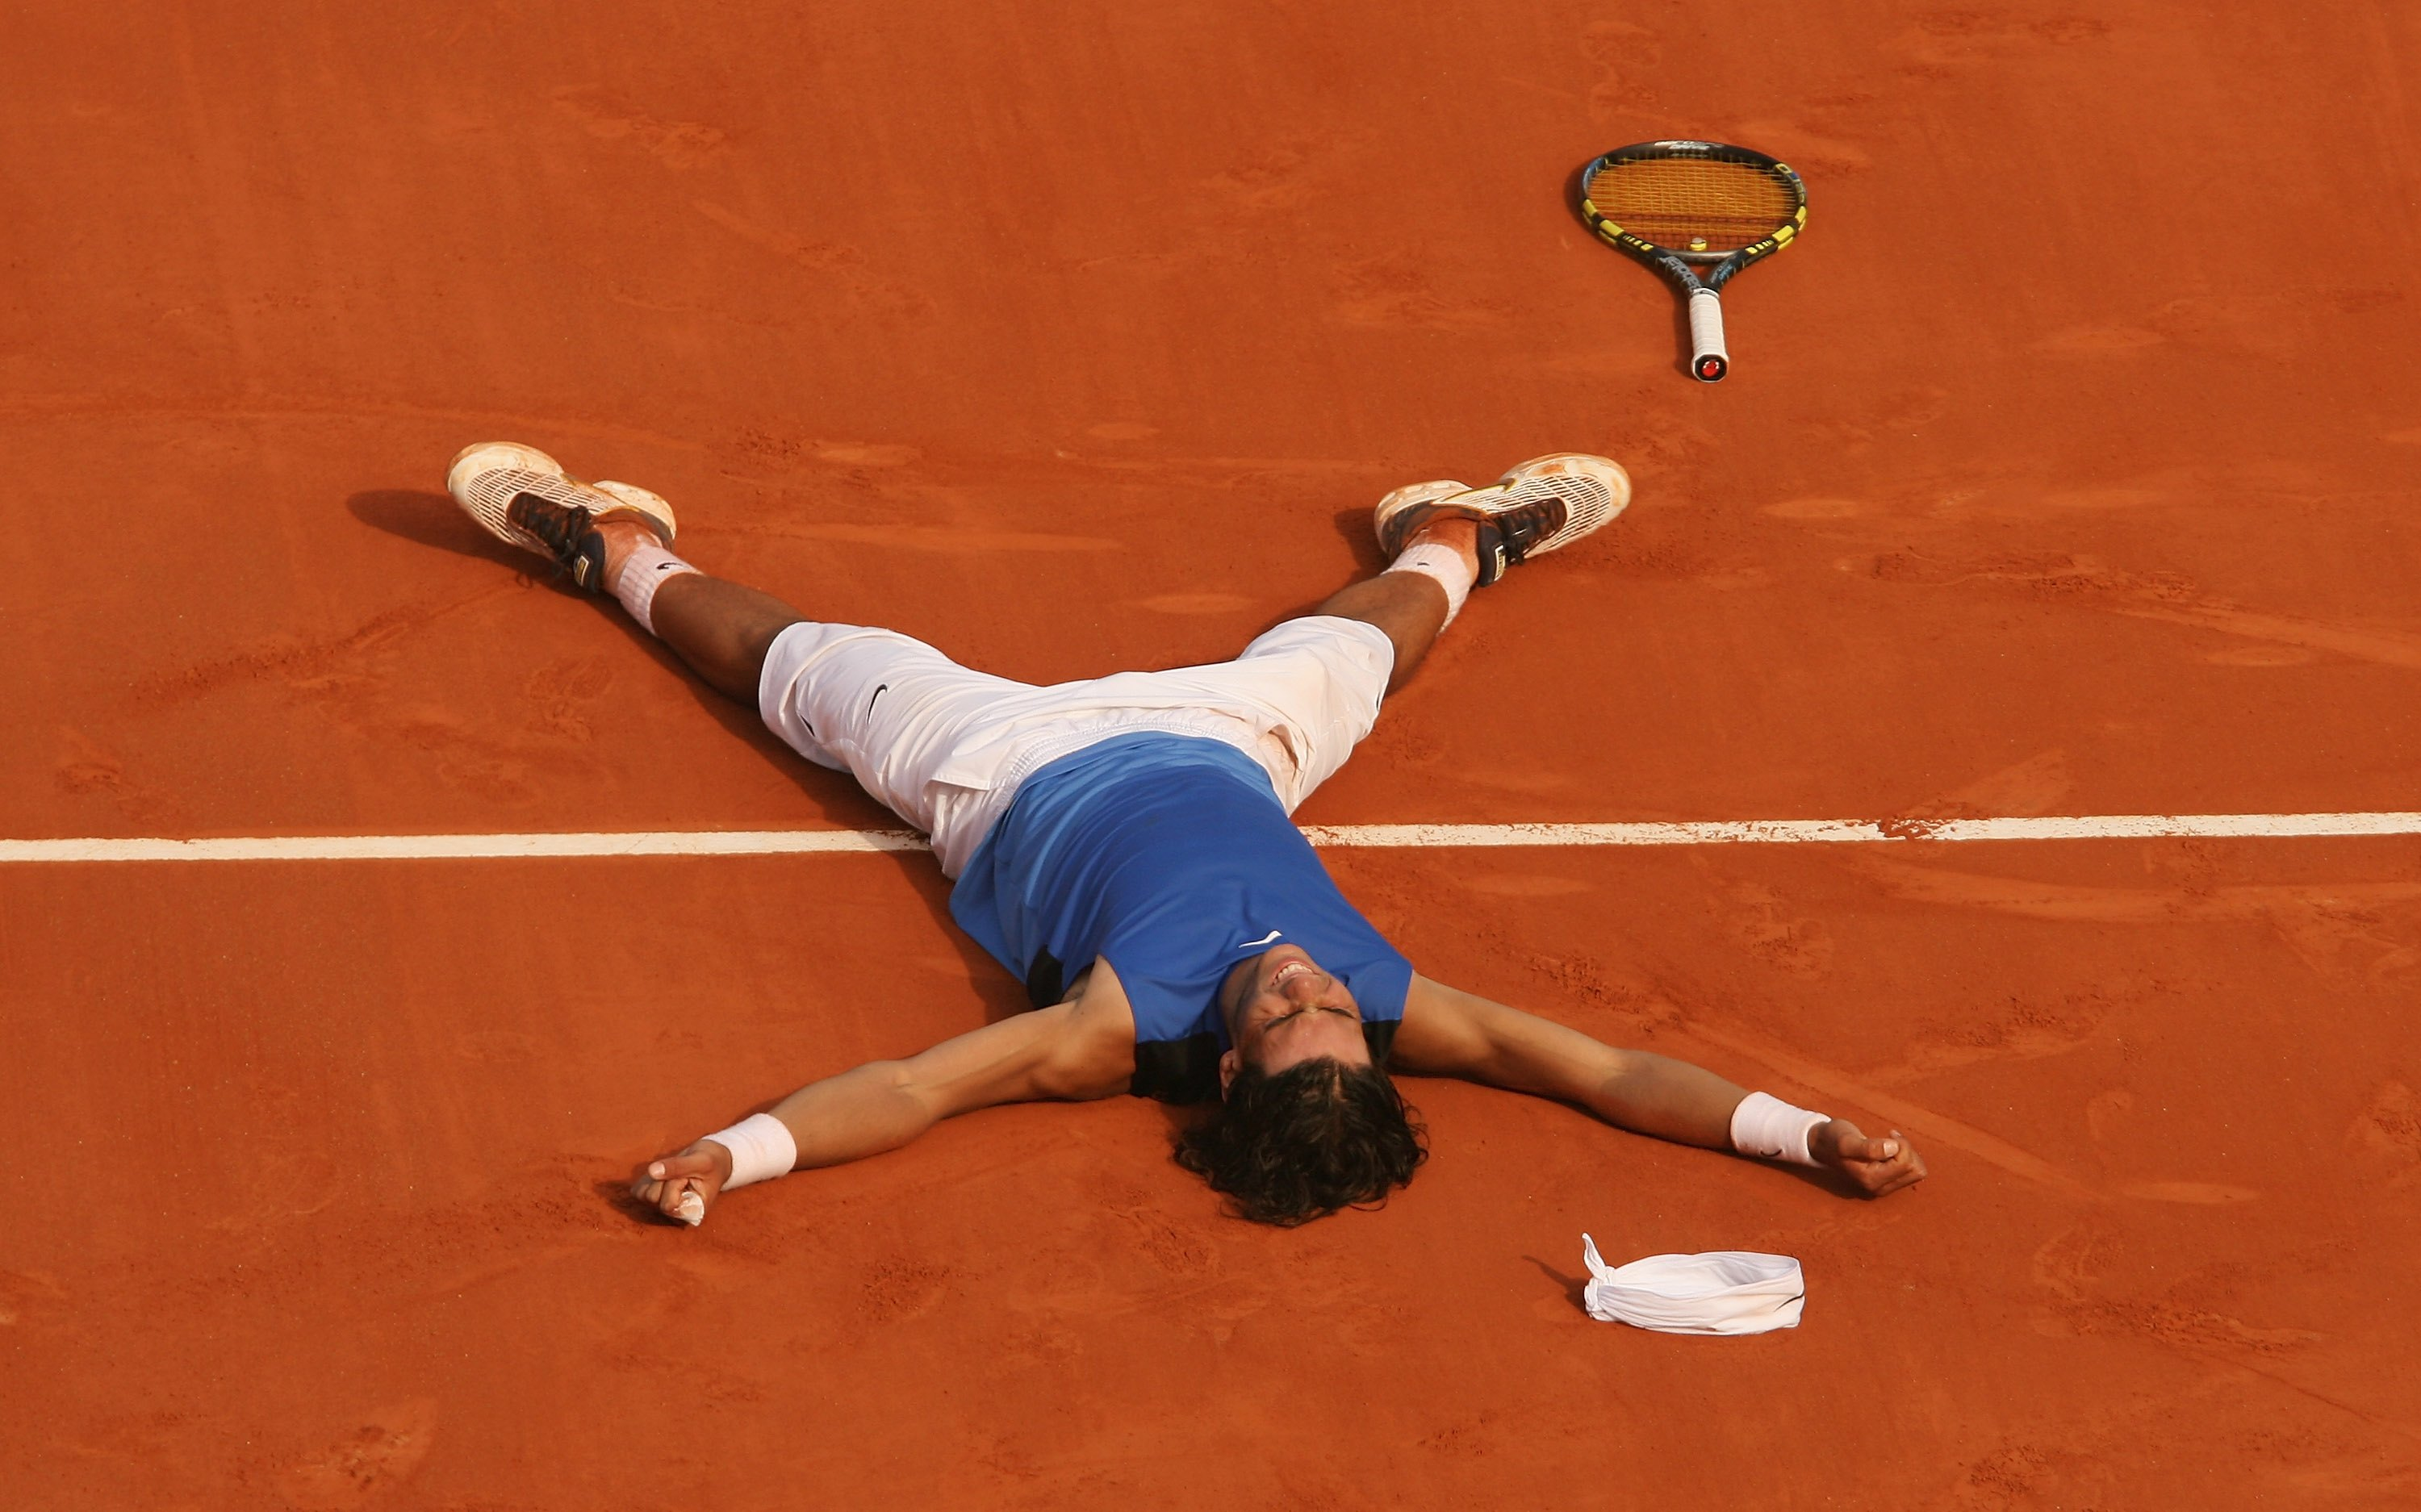 PARIS - JUNE 11:  Rafael Nadal of Spain lies on the clay after defeating Roger Federer of Switzerland during the Men's Singles Final on day fifteen of the French Open at Roland Garros on June 11, 2006 in Paris, France.  (Photo by Clive Brunskill/Getty Ima